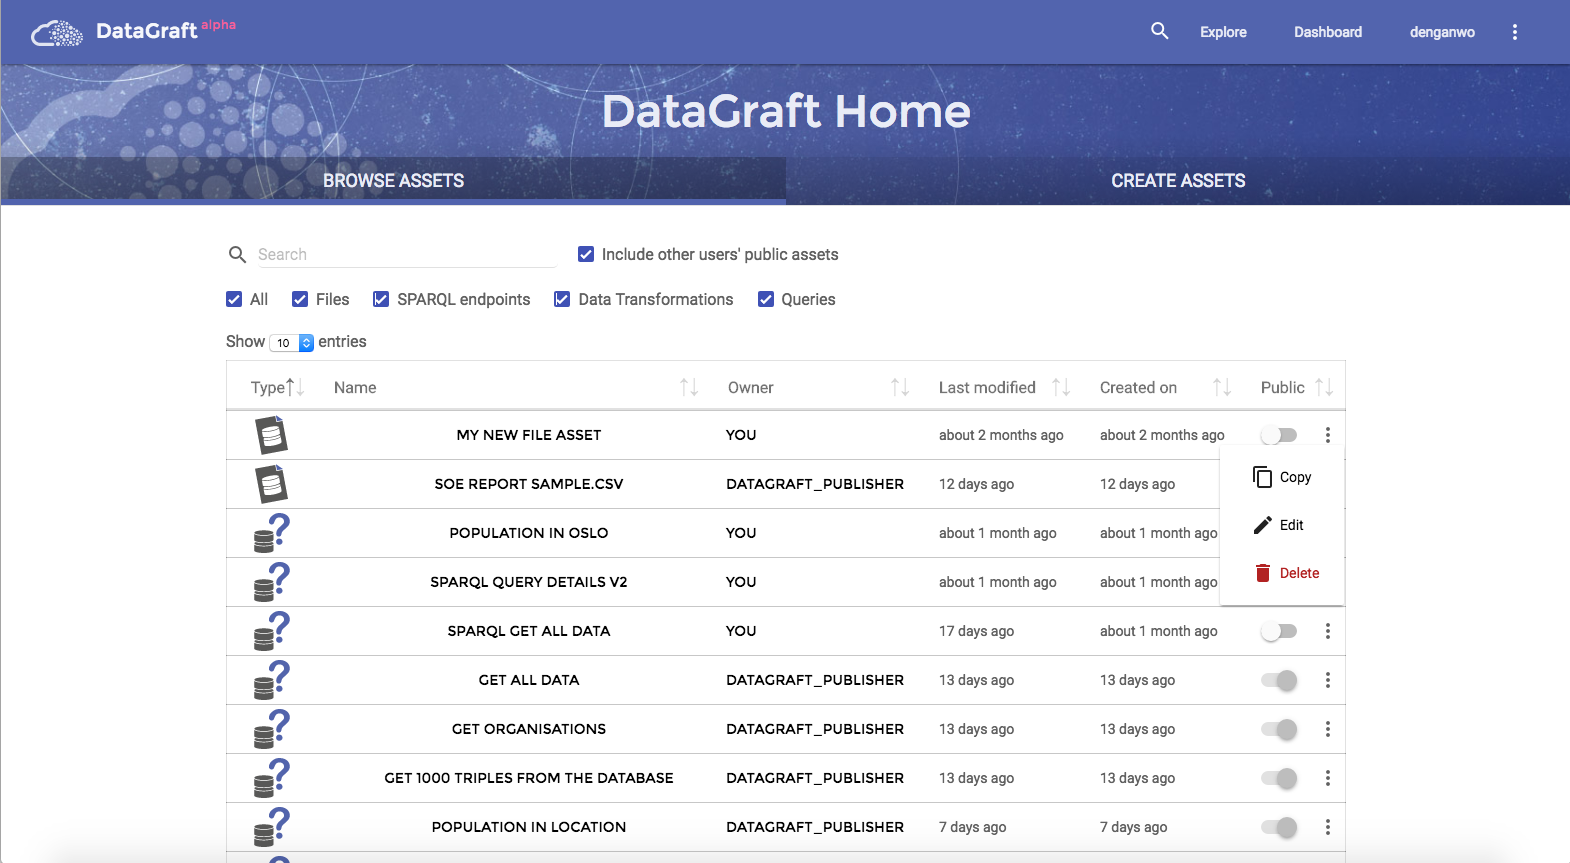 DataGraft Homepage Browse Assets